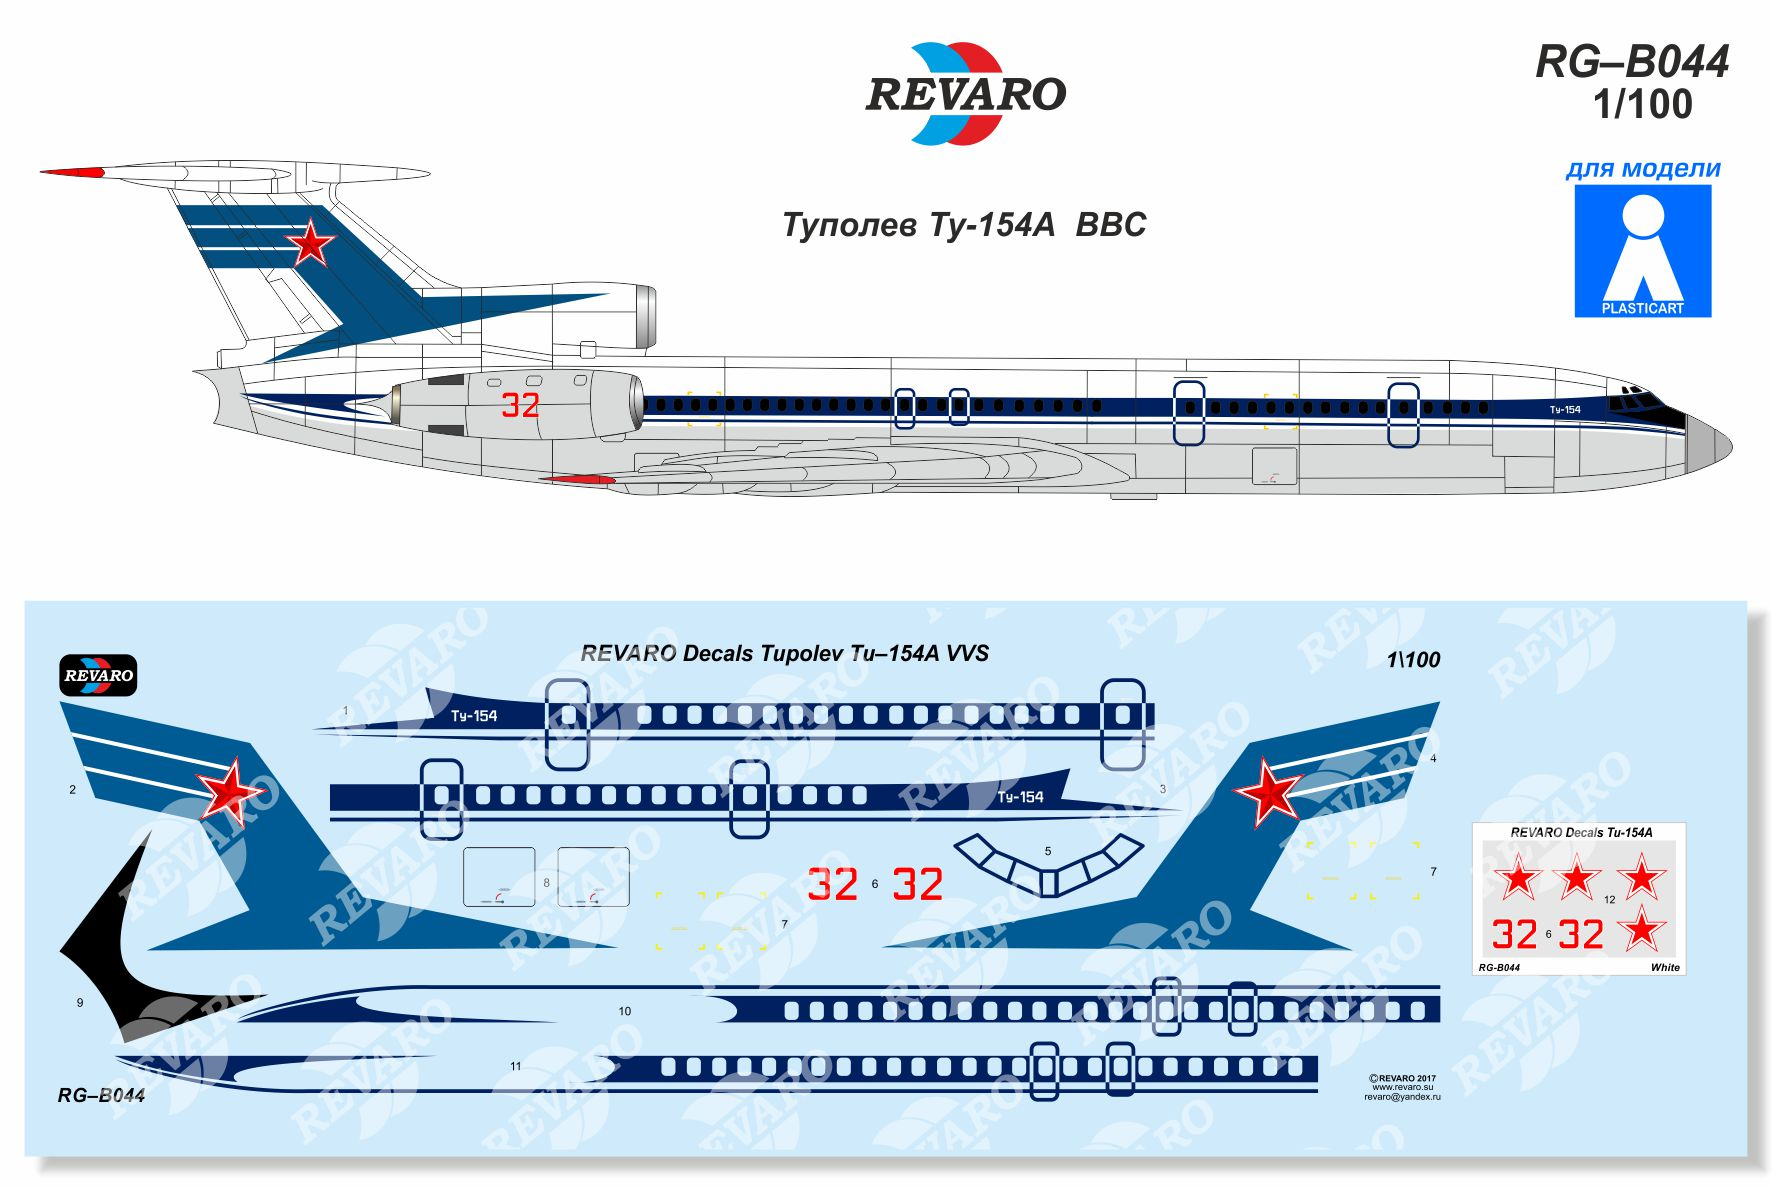 декаль на Ту-154 32 ВВС, revaro plasticart  decal 1 100